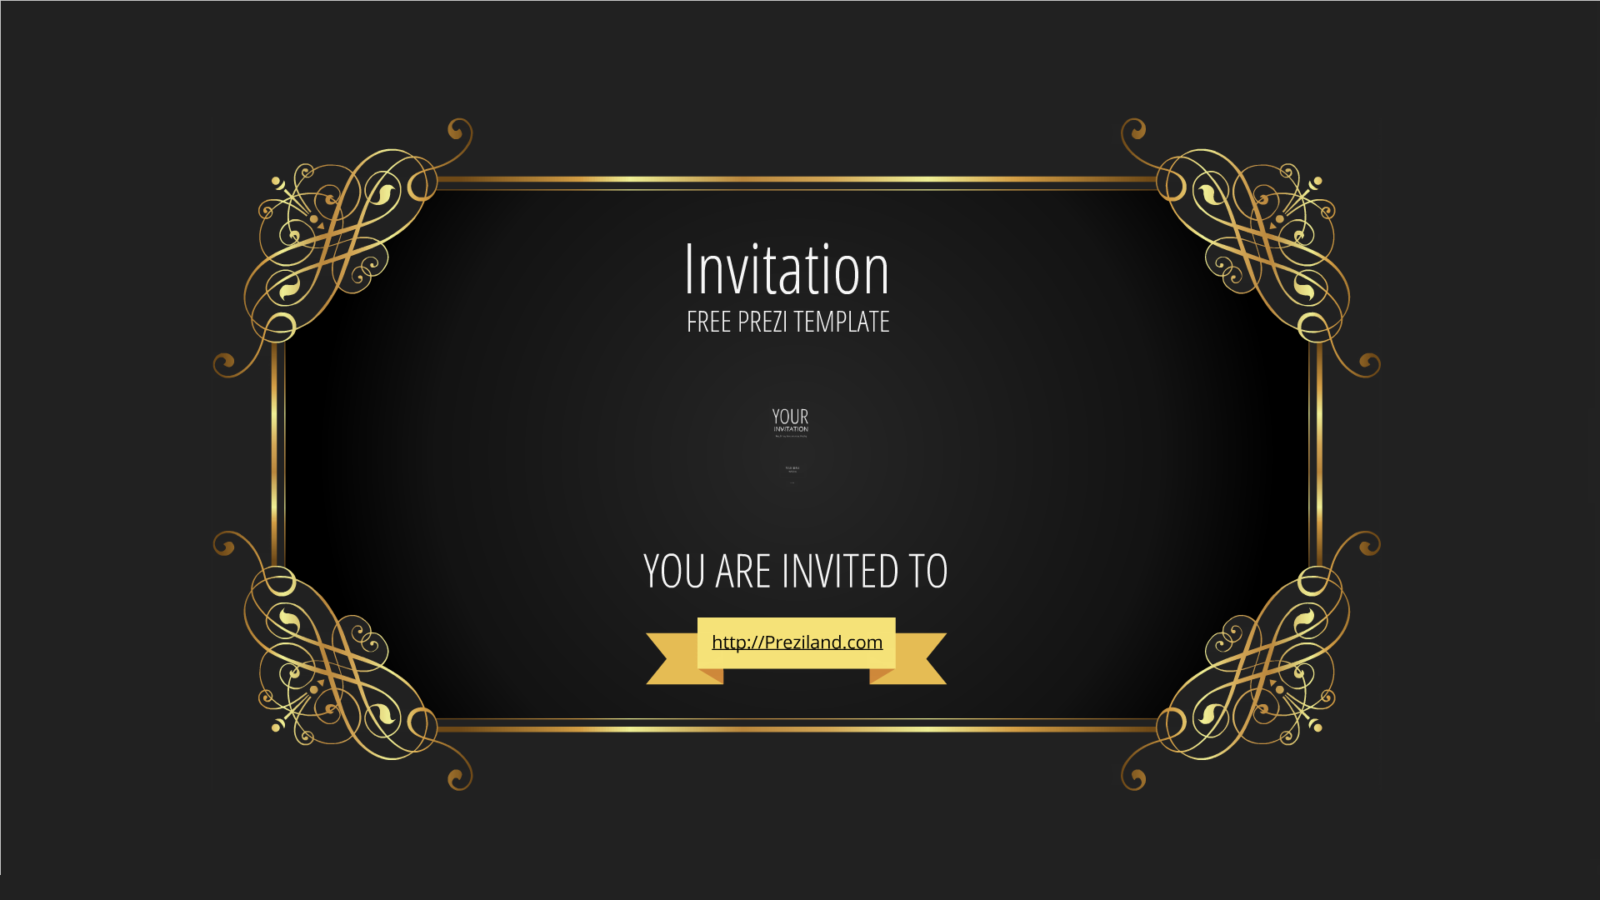 Free Prezi template Invitation – Template Invitation